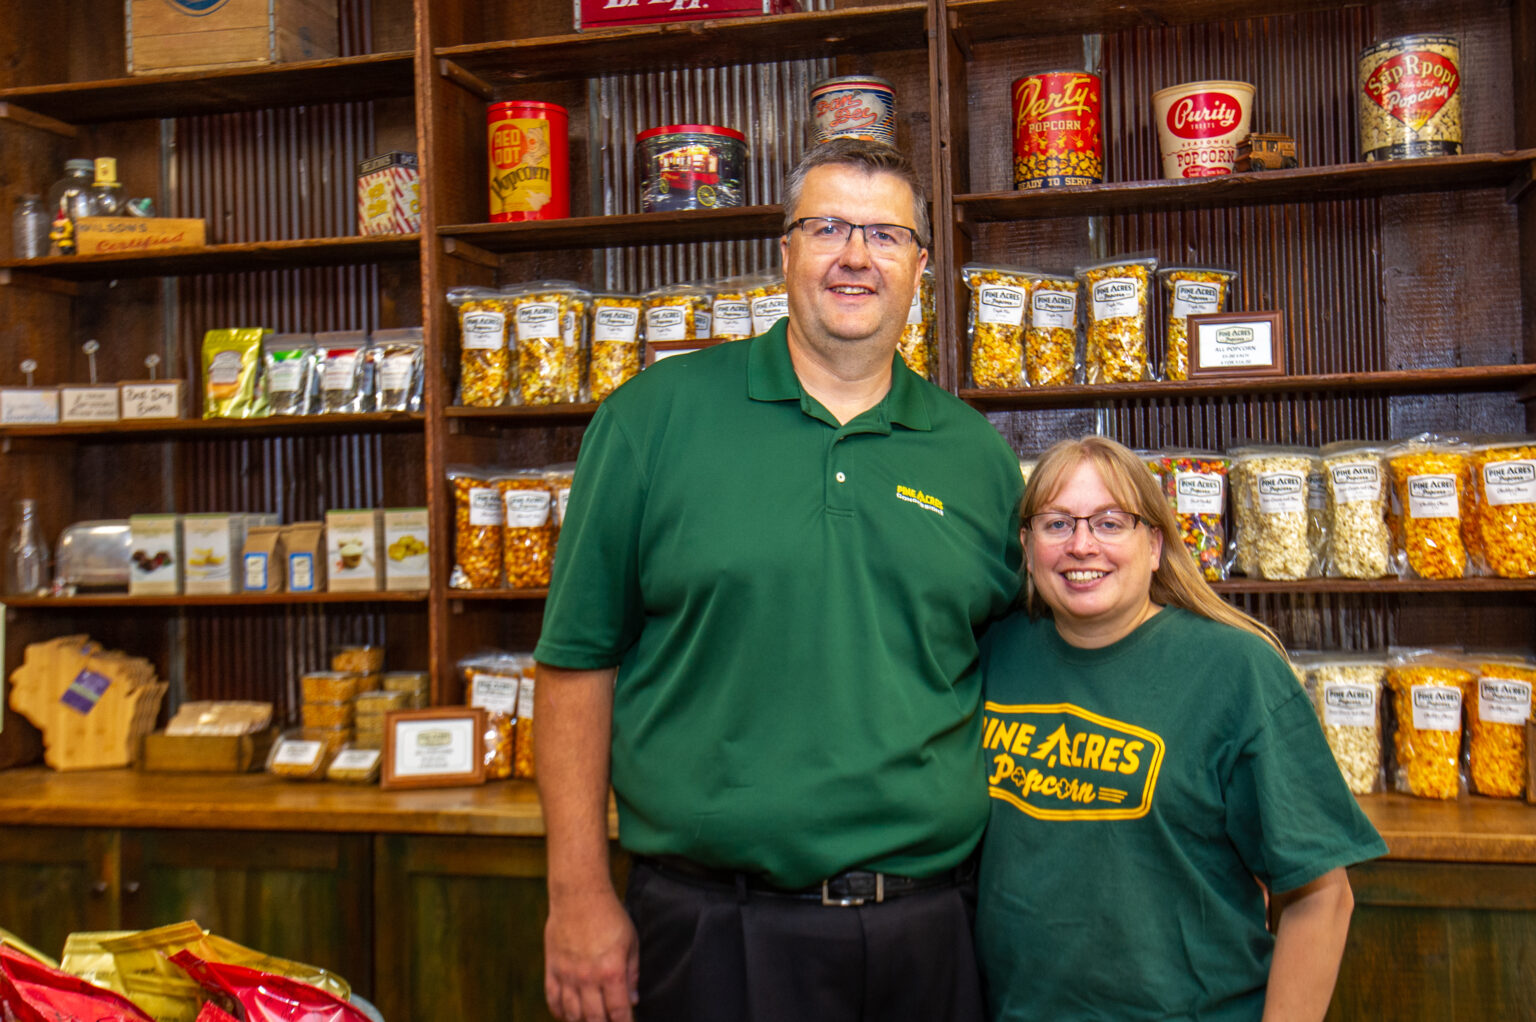 Pine Acres popcorn grand opening; picture of owners Ed and Christine Grochowski